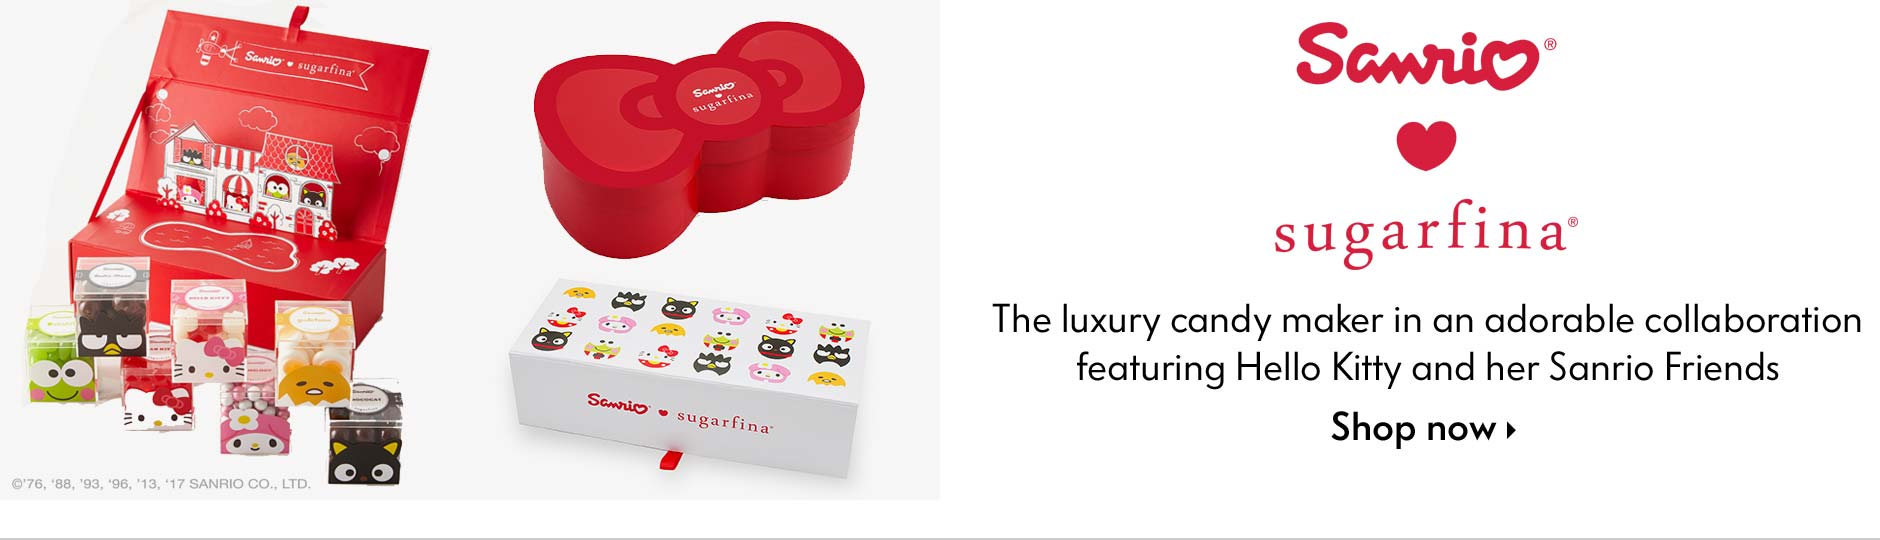 Sanrio Sugarfina - the luxury candy maker in an adorable collaboration featuring Hello Kitty and her Sanrio Friends - shop now